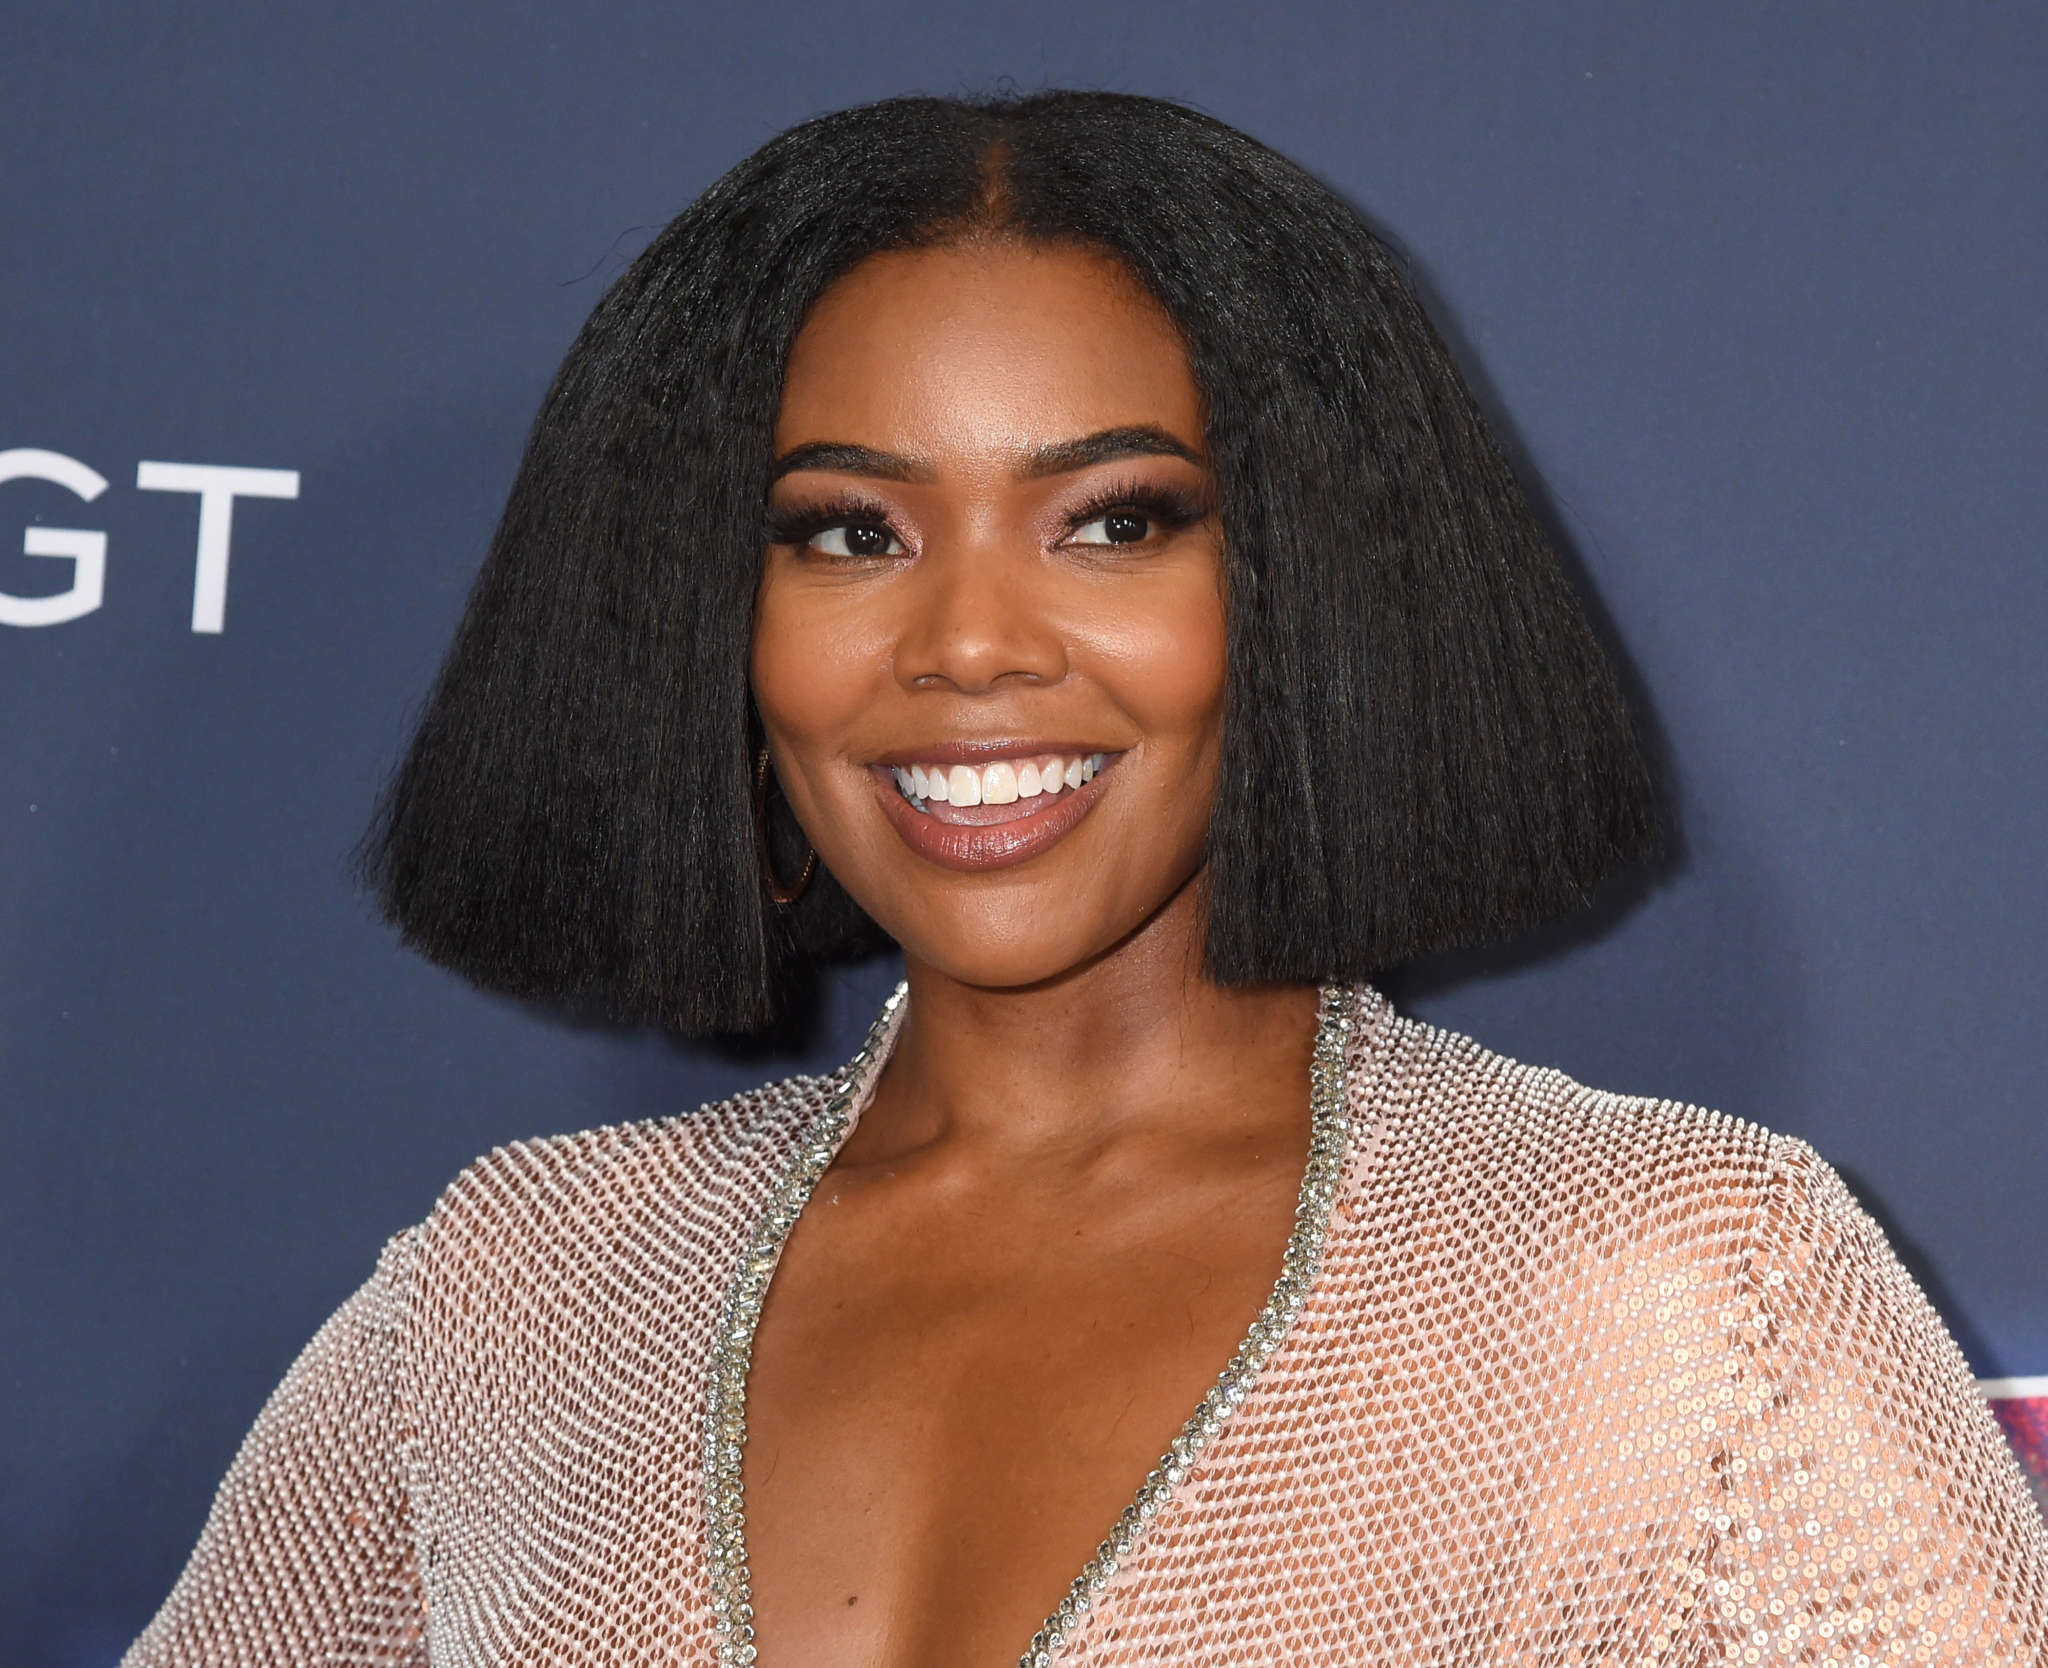 Gabrielle Union Gives A Shoutout To A Virology Researcher